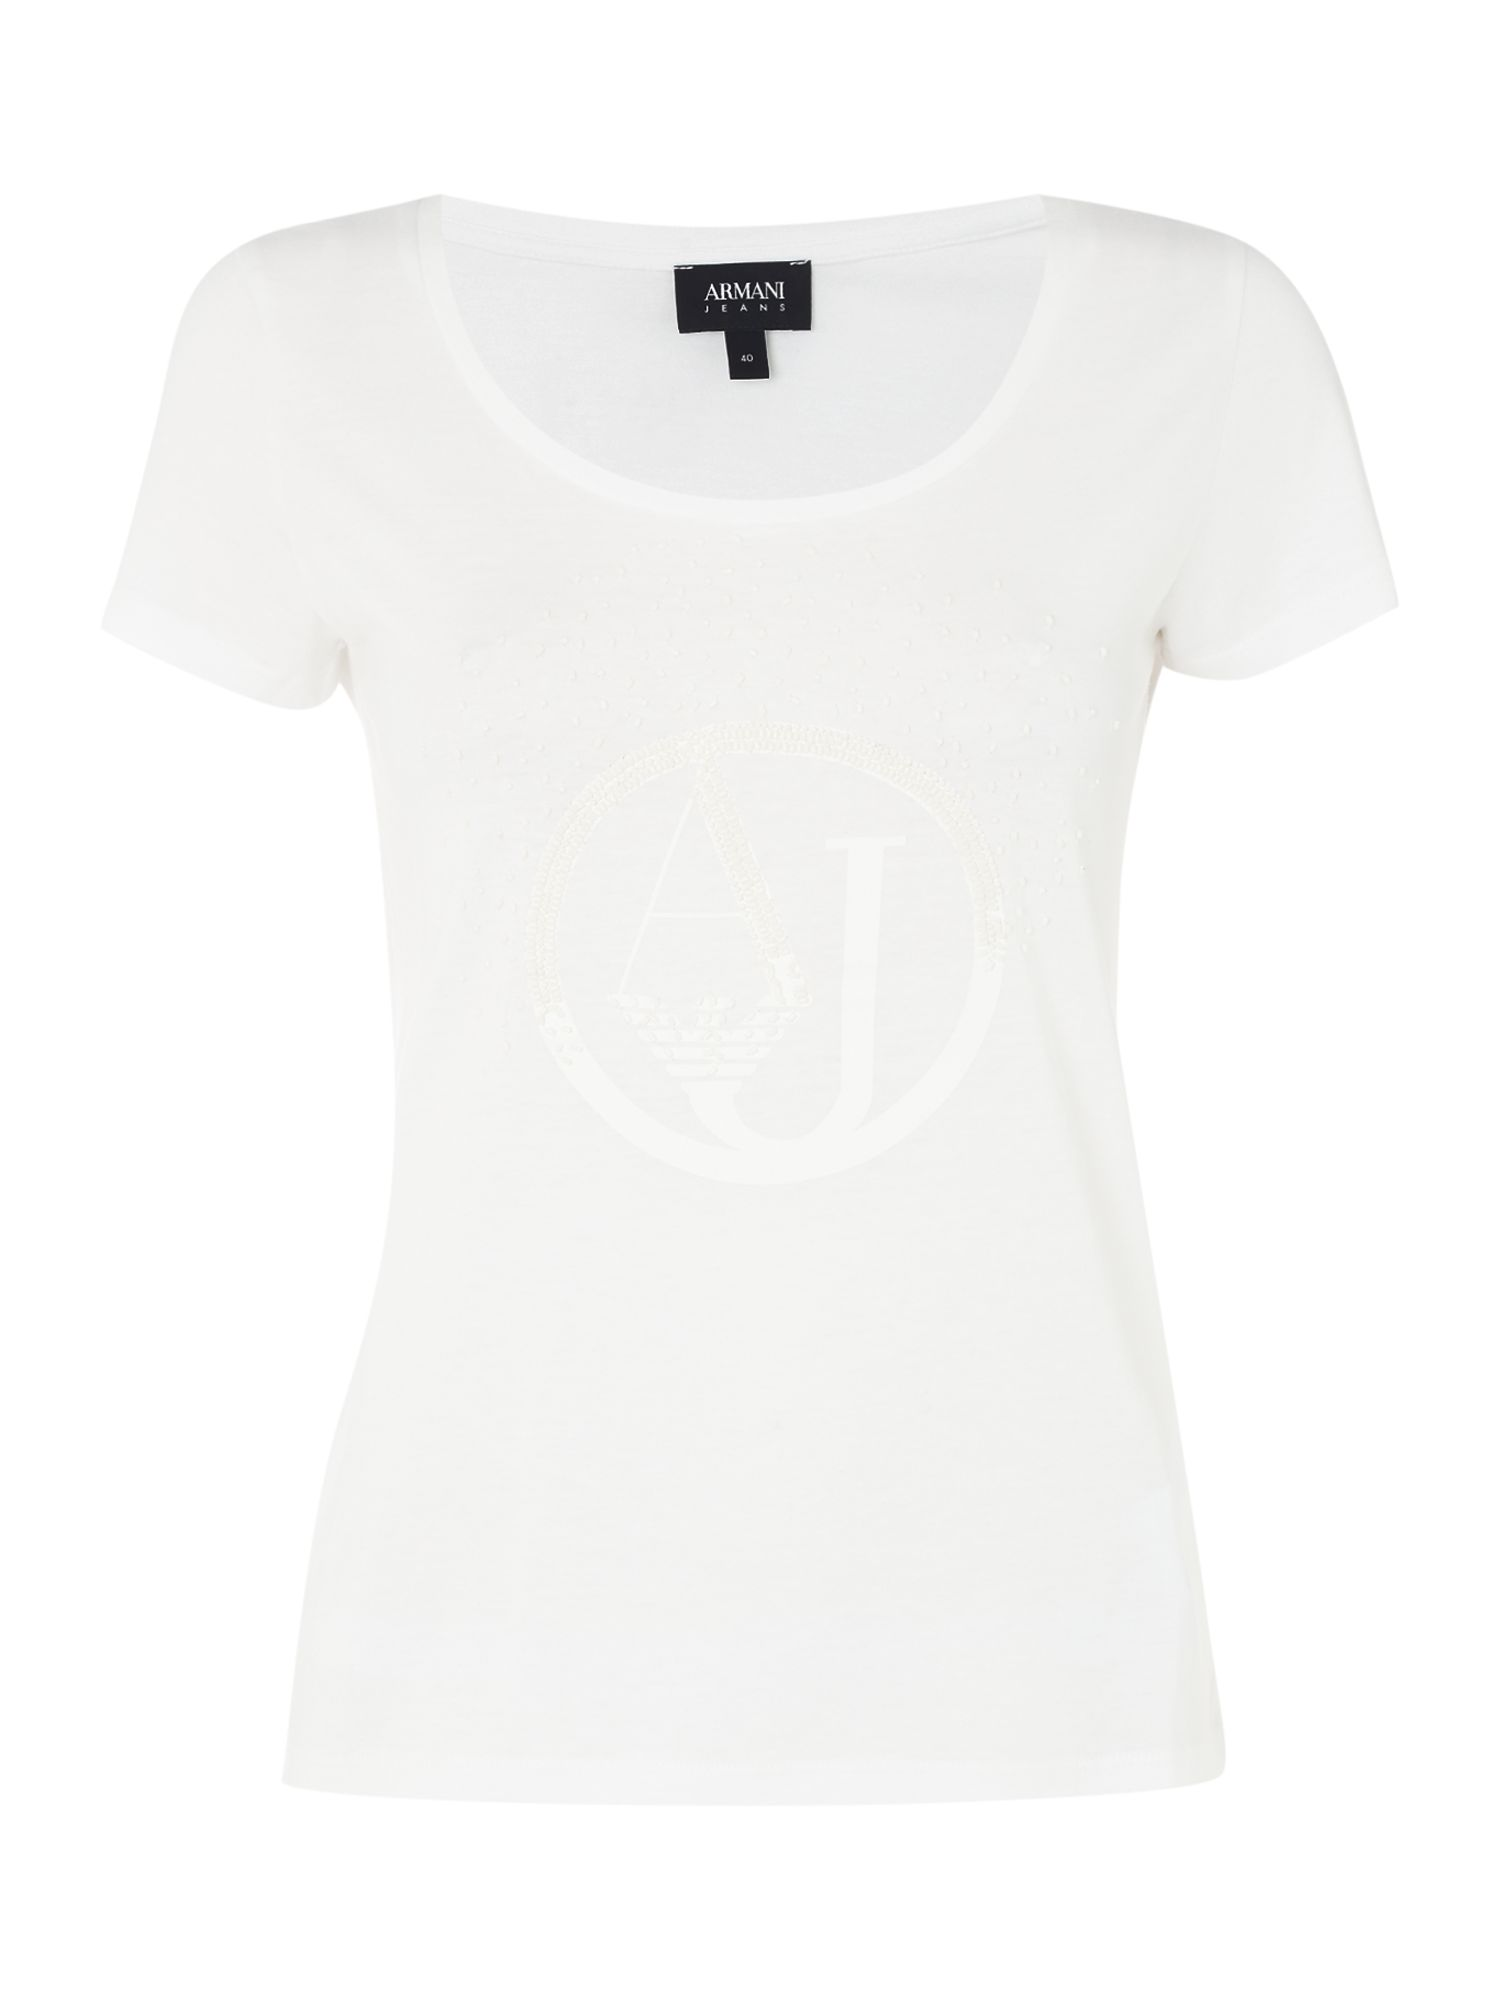 Armani Jeans Short sleeve shiny AJ tee in white White